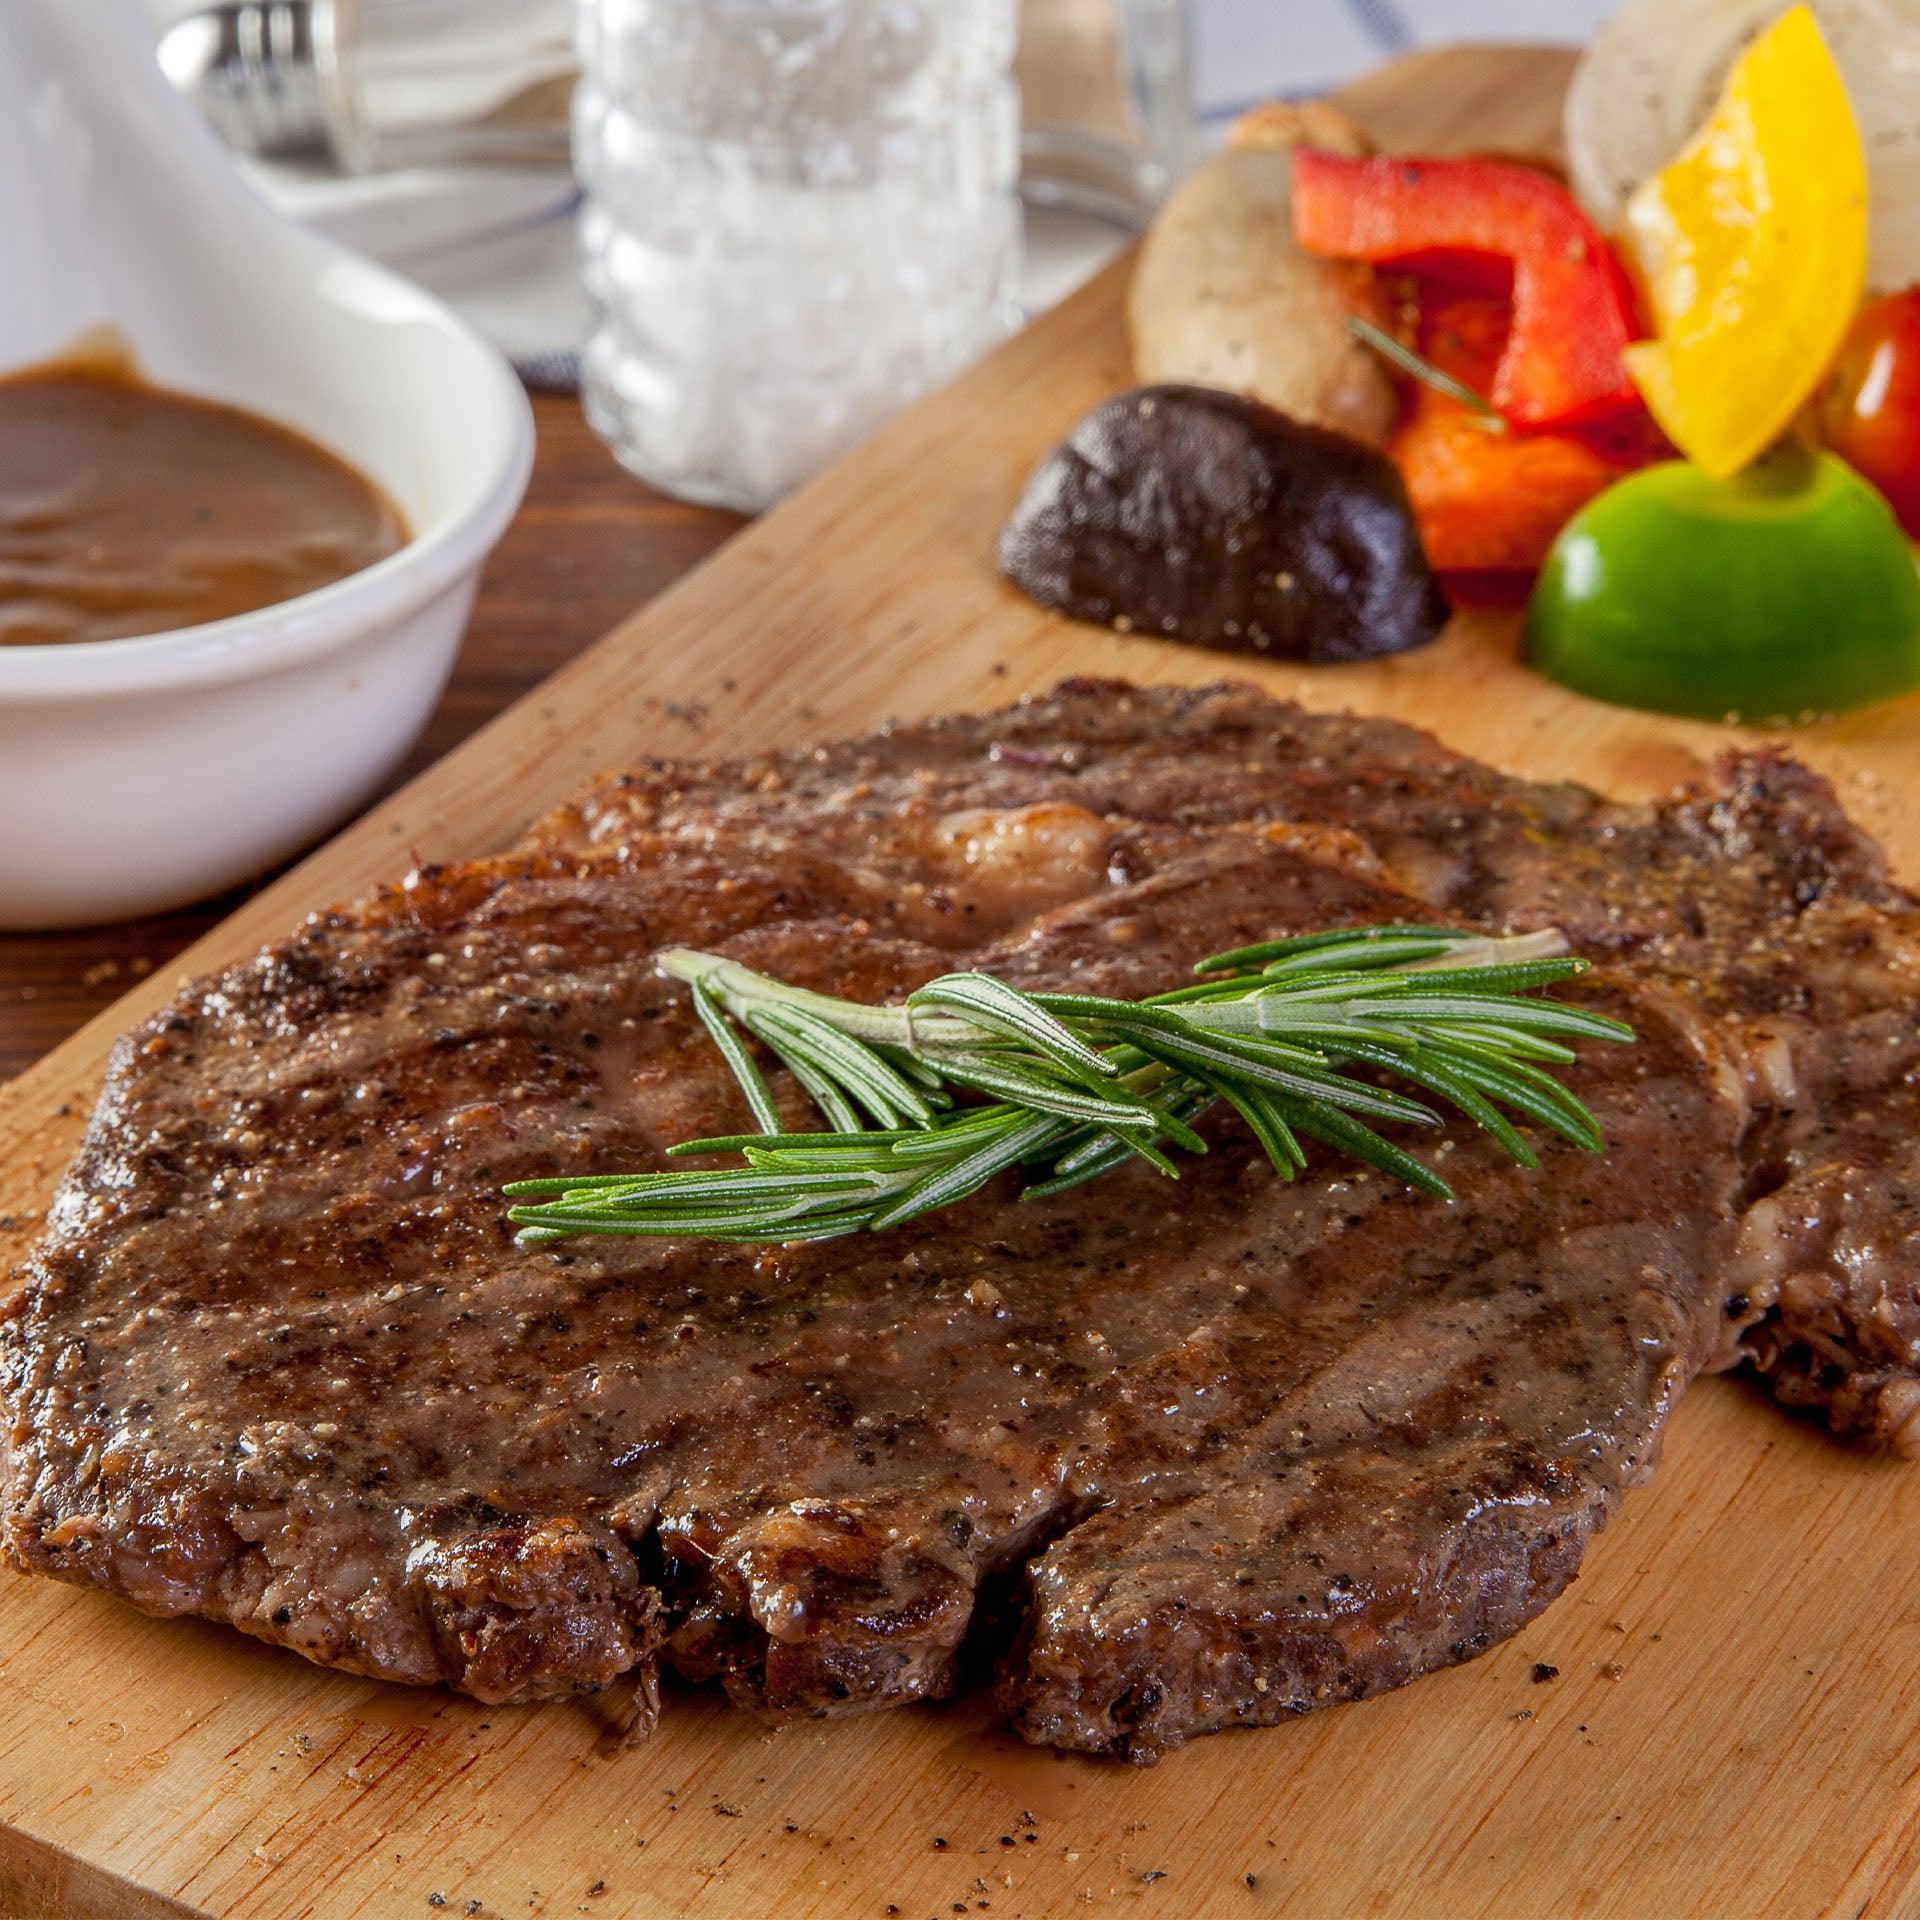 Premium Steak Variety Pack - up to 4 pounds of Premium Steaks/Chops for $69